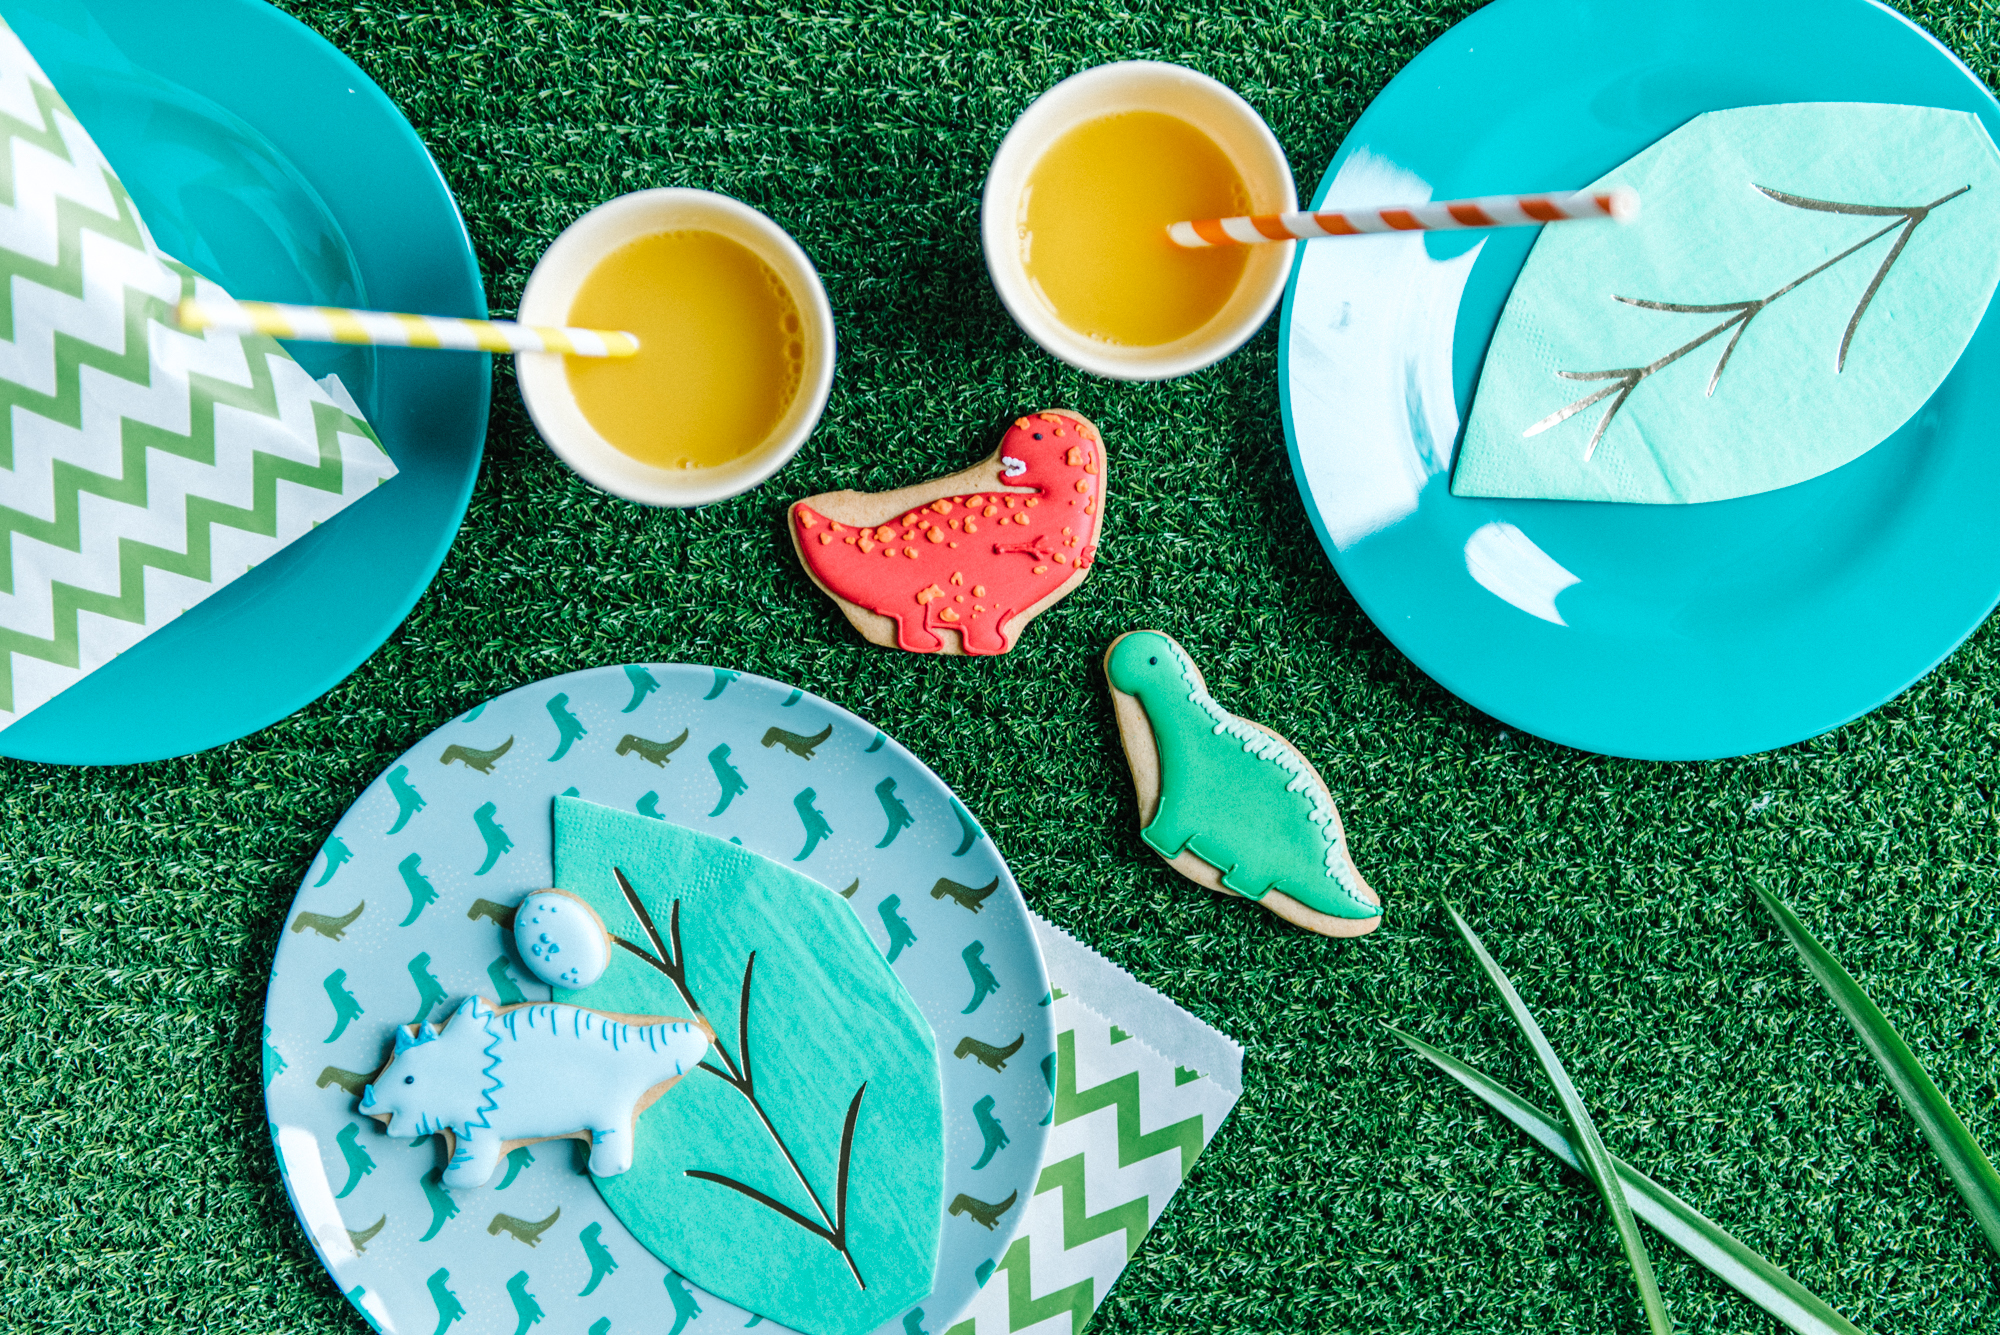 Shop By Theme - Whatever your party theme, our hired tableware and carefully sourced accessories will help you get your party looking on point in sustainable way.